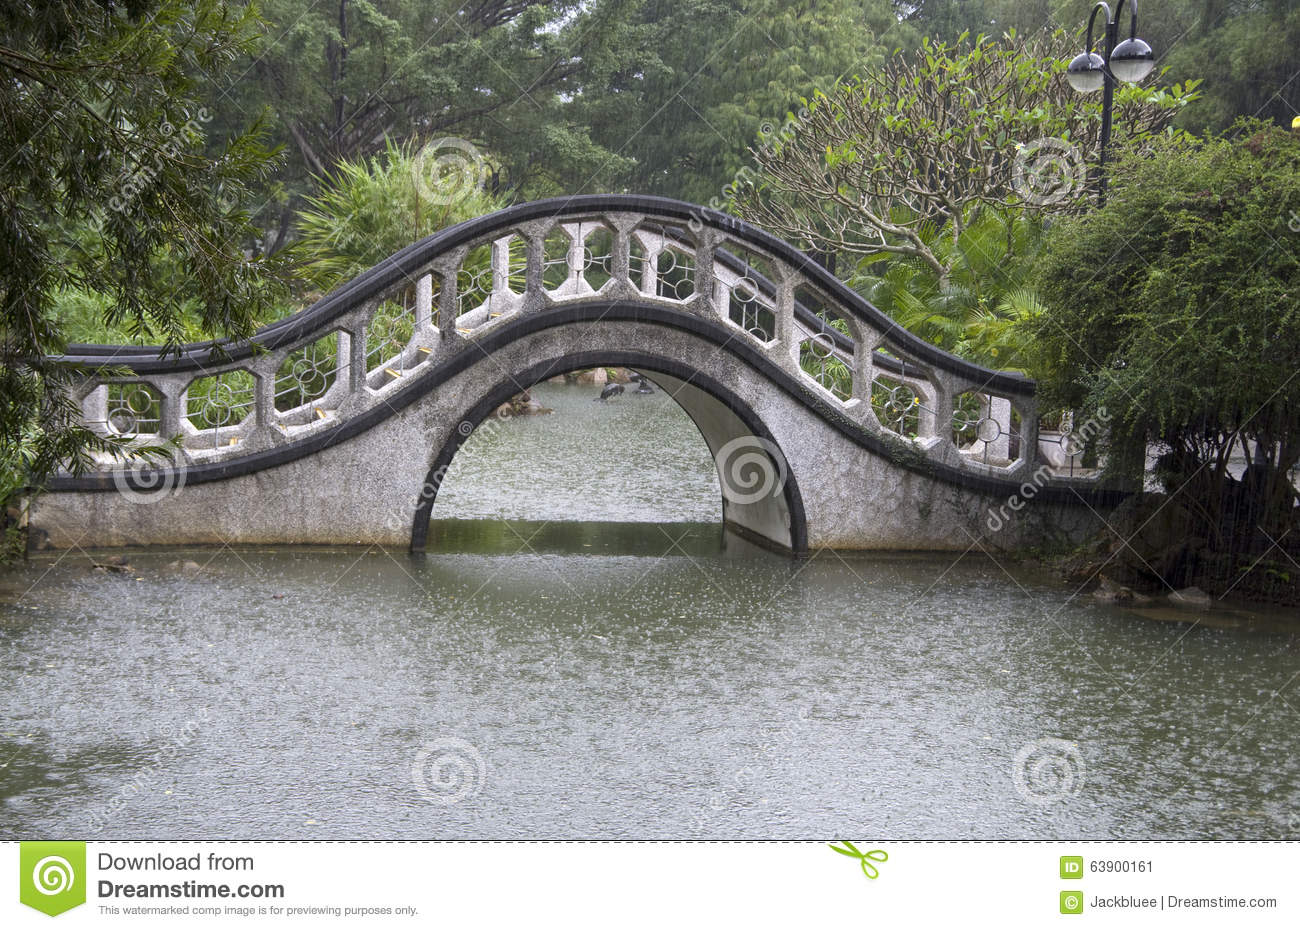 Attraktiv Download Asian Garden With Traditional Arch Bridge Stock Image   Image Of  Pond, Design: